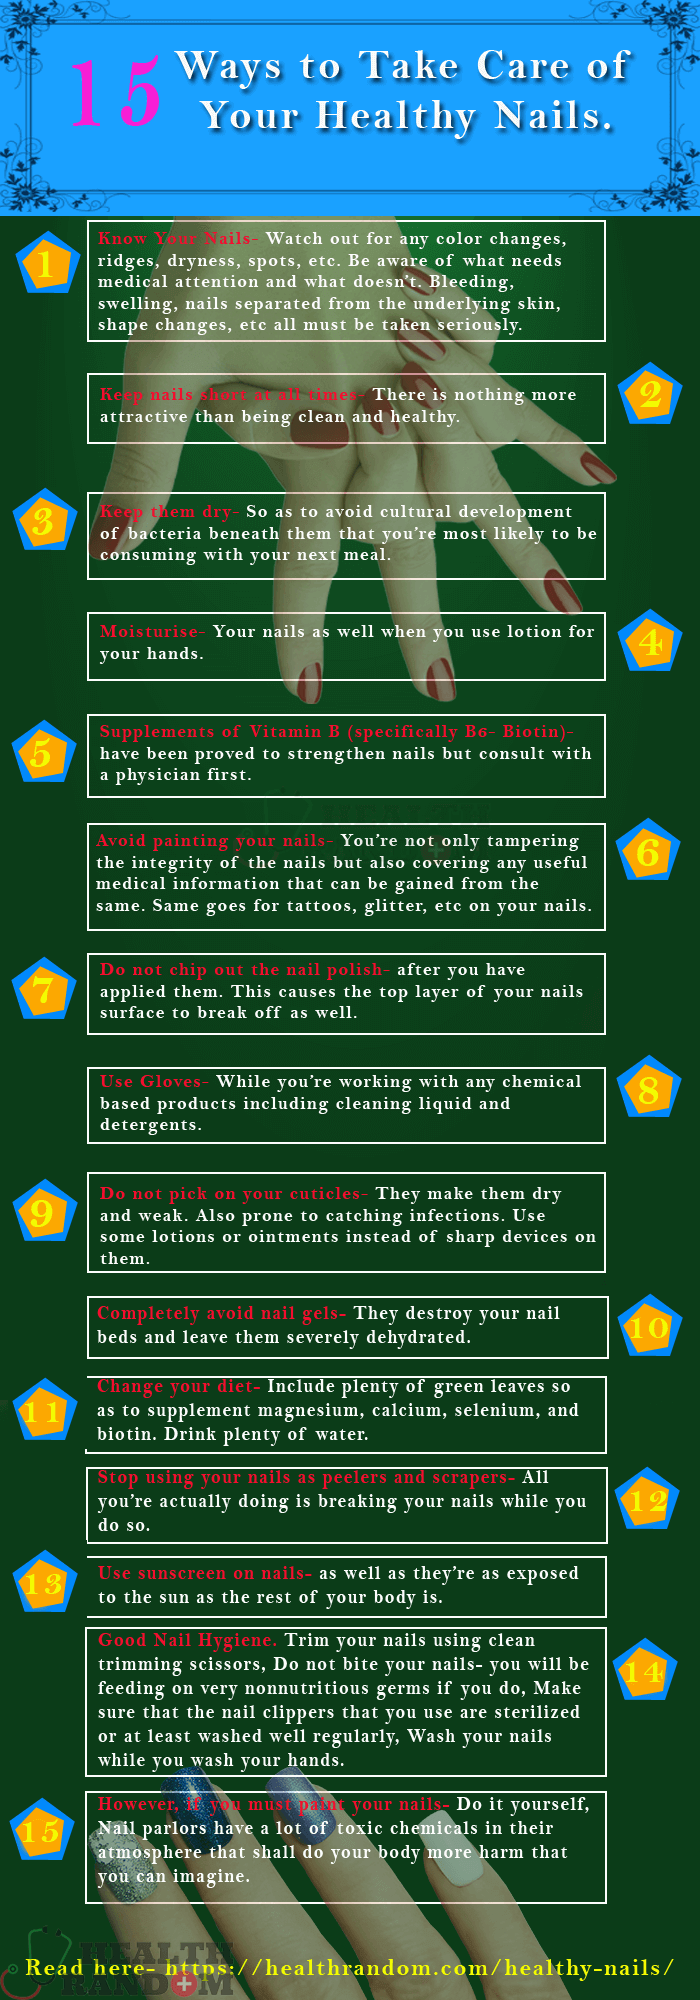 Healthy Nails info-graphics